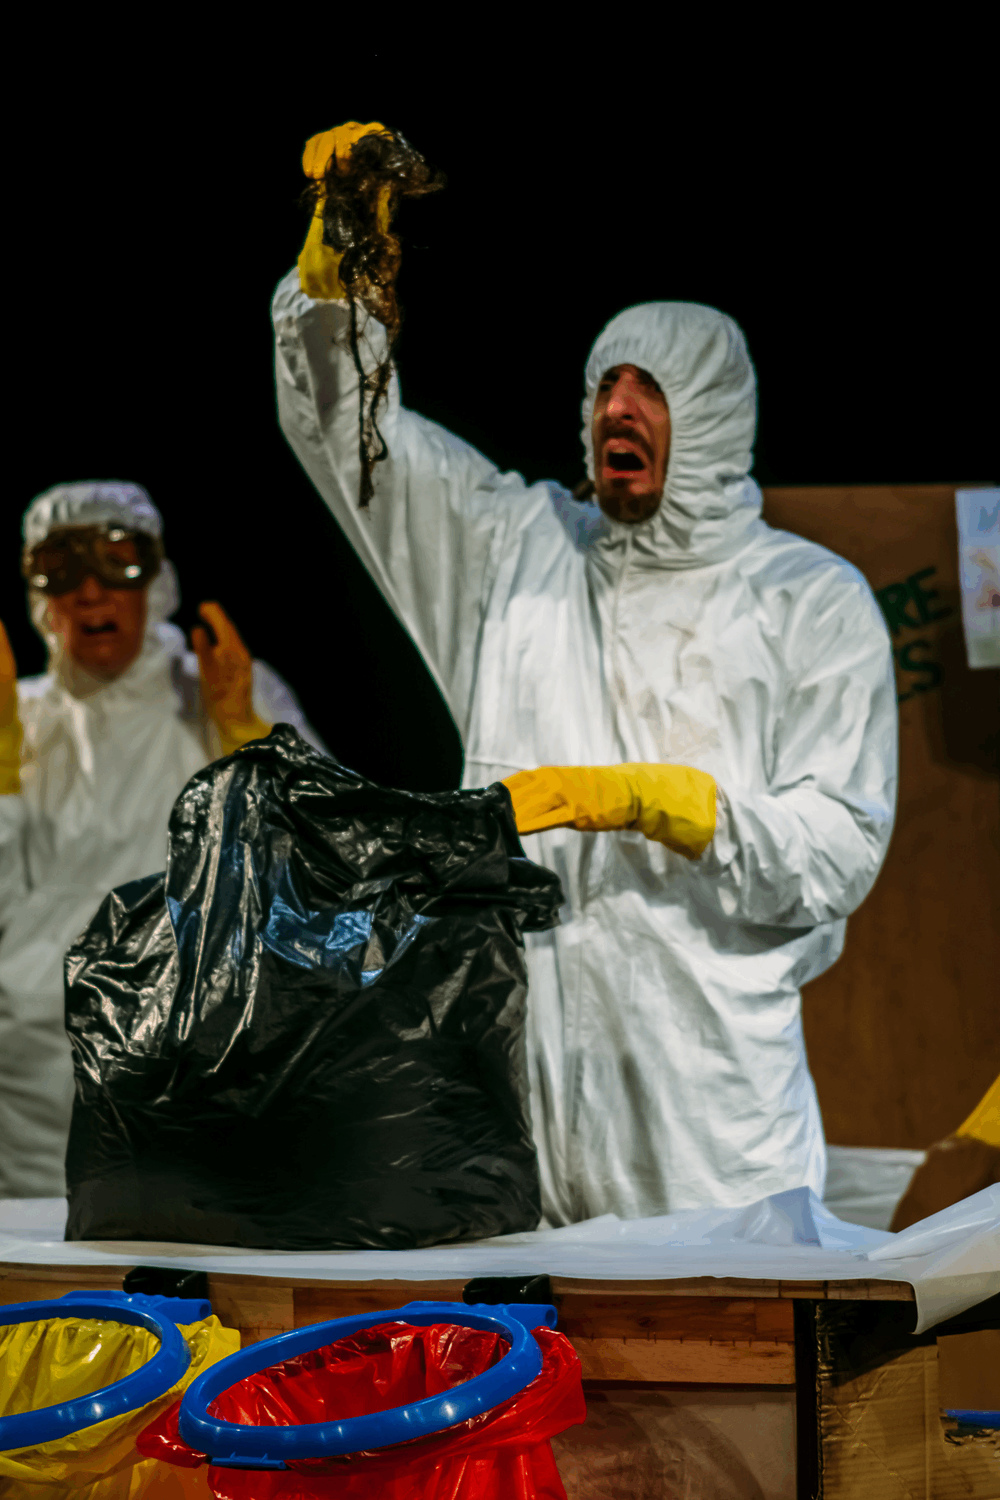 performer in white hazard suit lifts hair covered in oil out of a bin bag